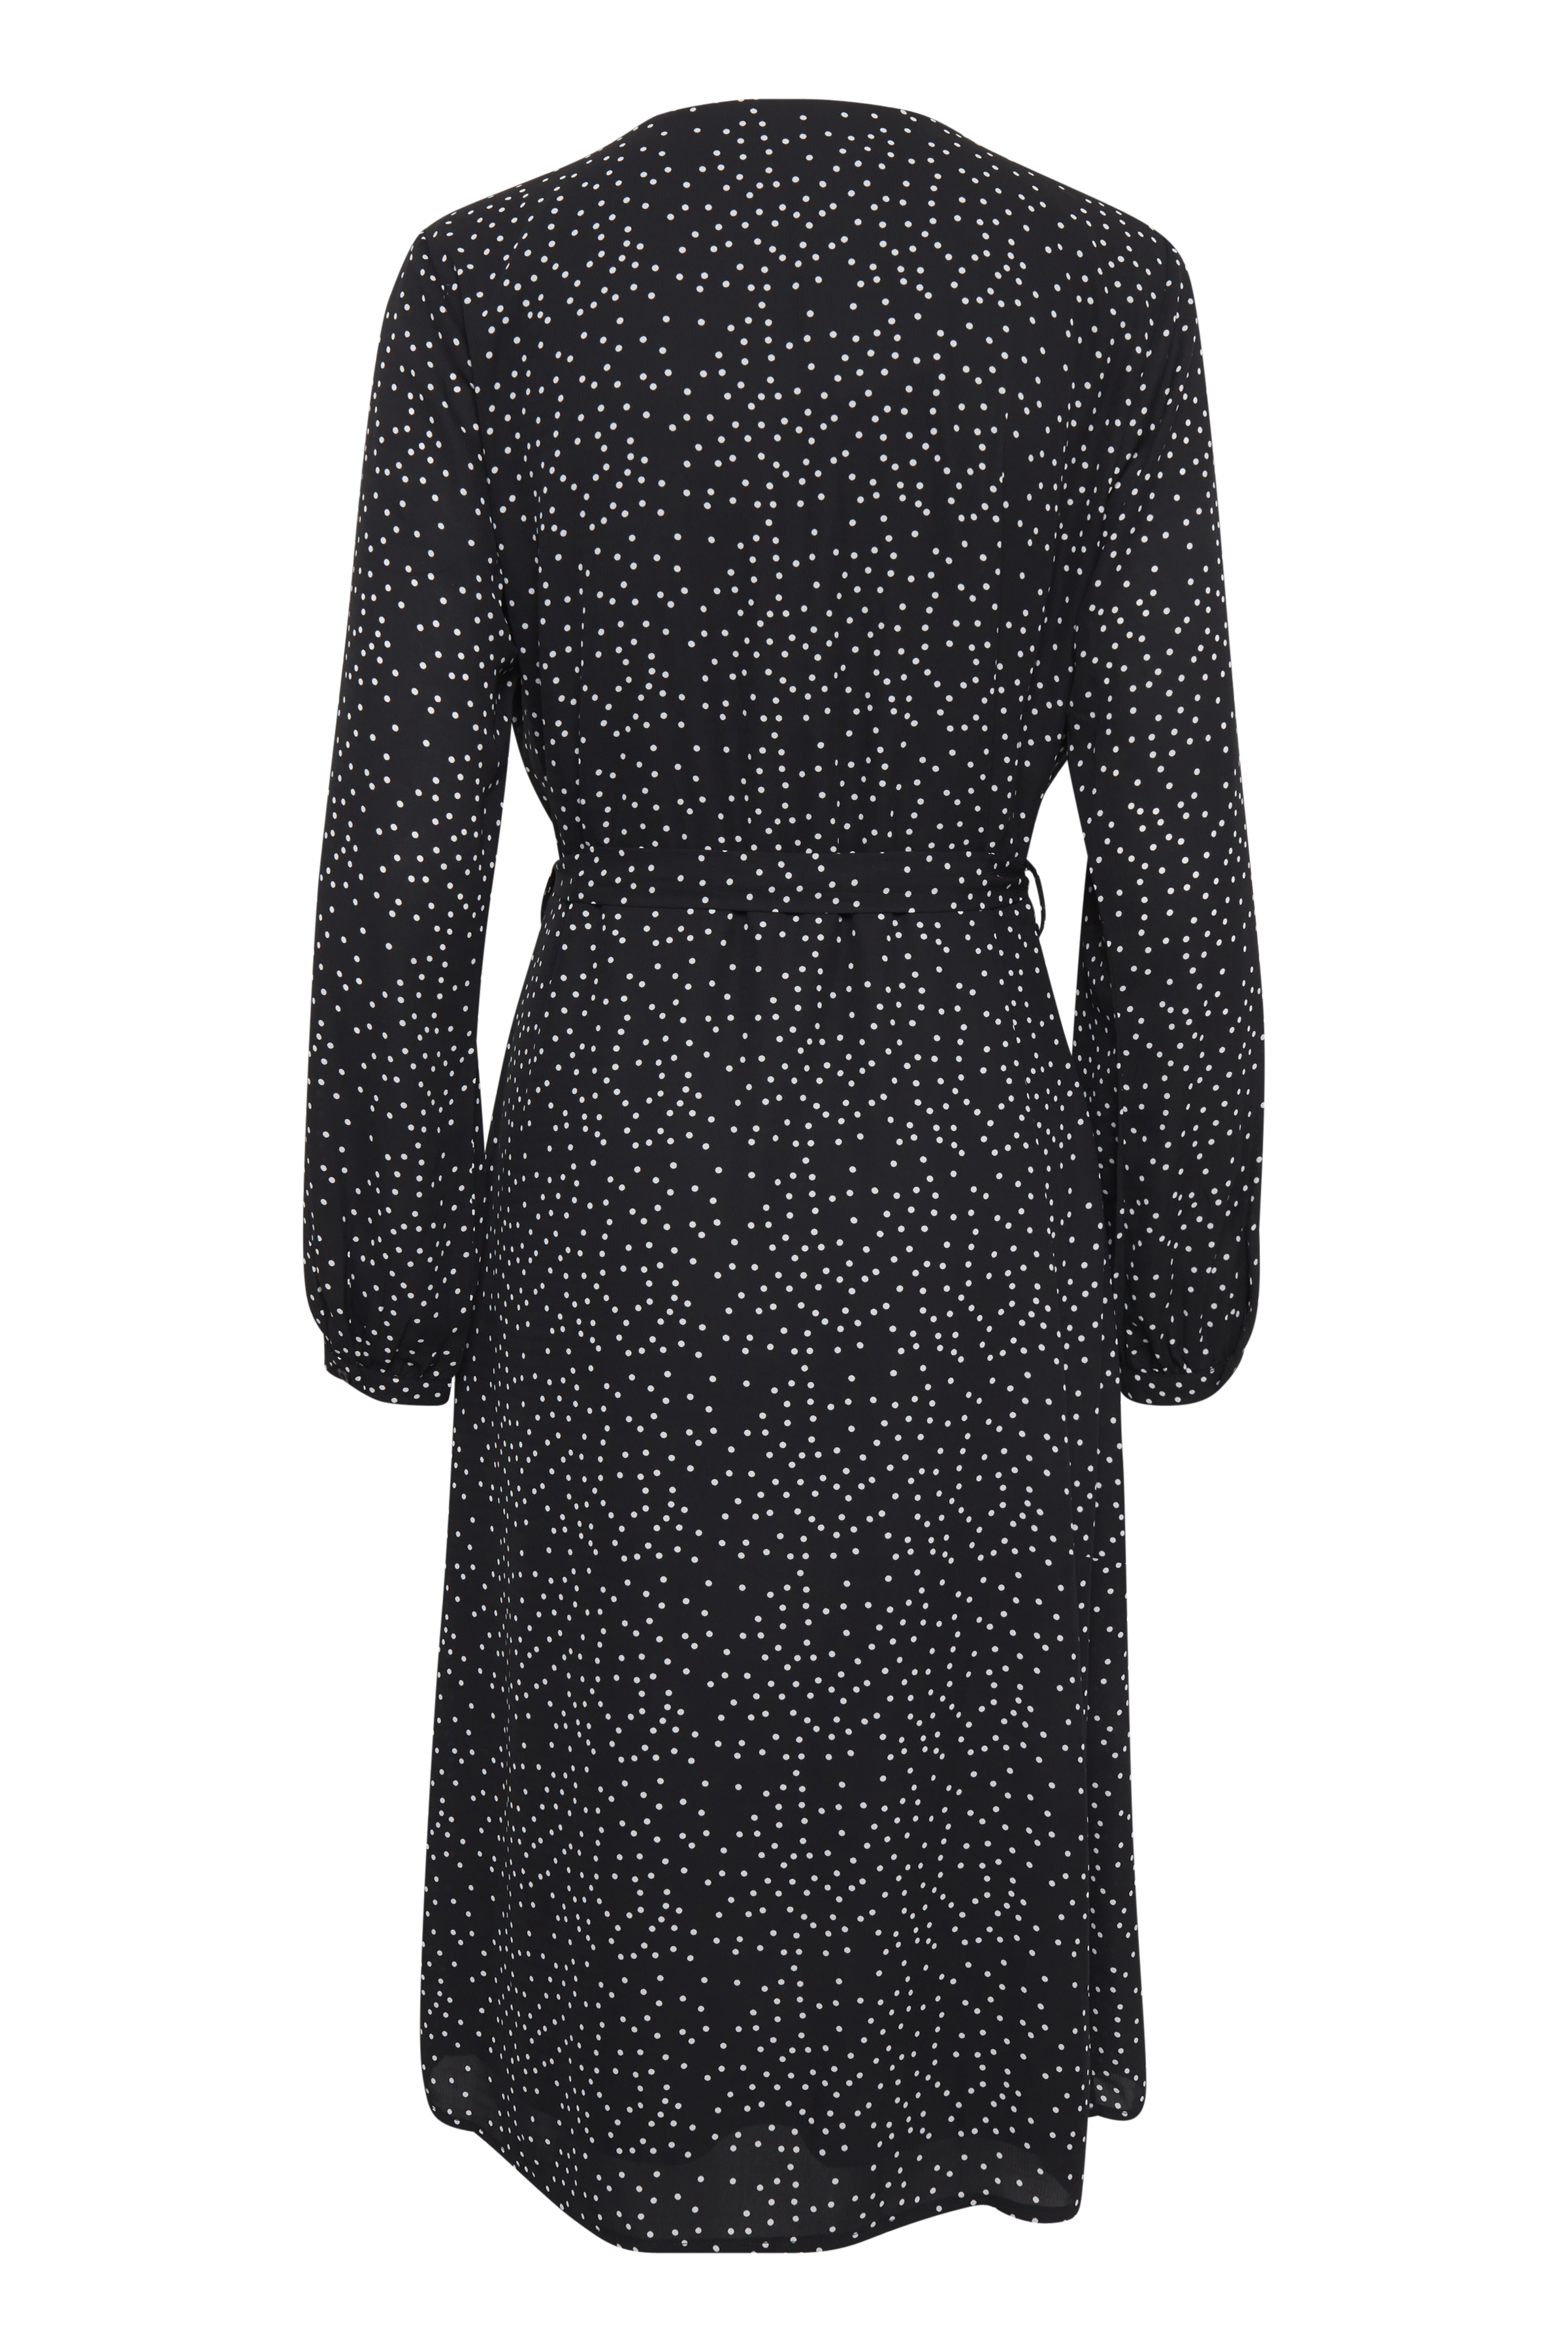 Black combi 1 Dress from b.young – Buy Black combi 1 Dress from size 34-42 here